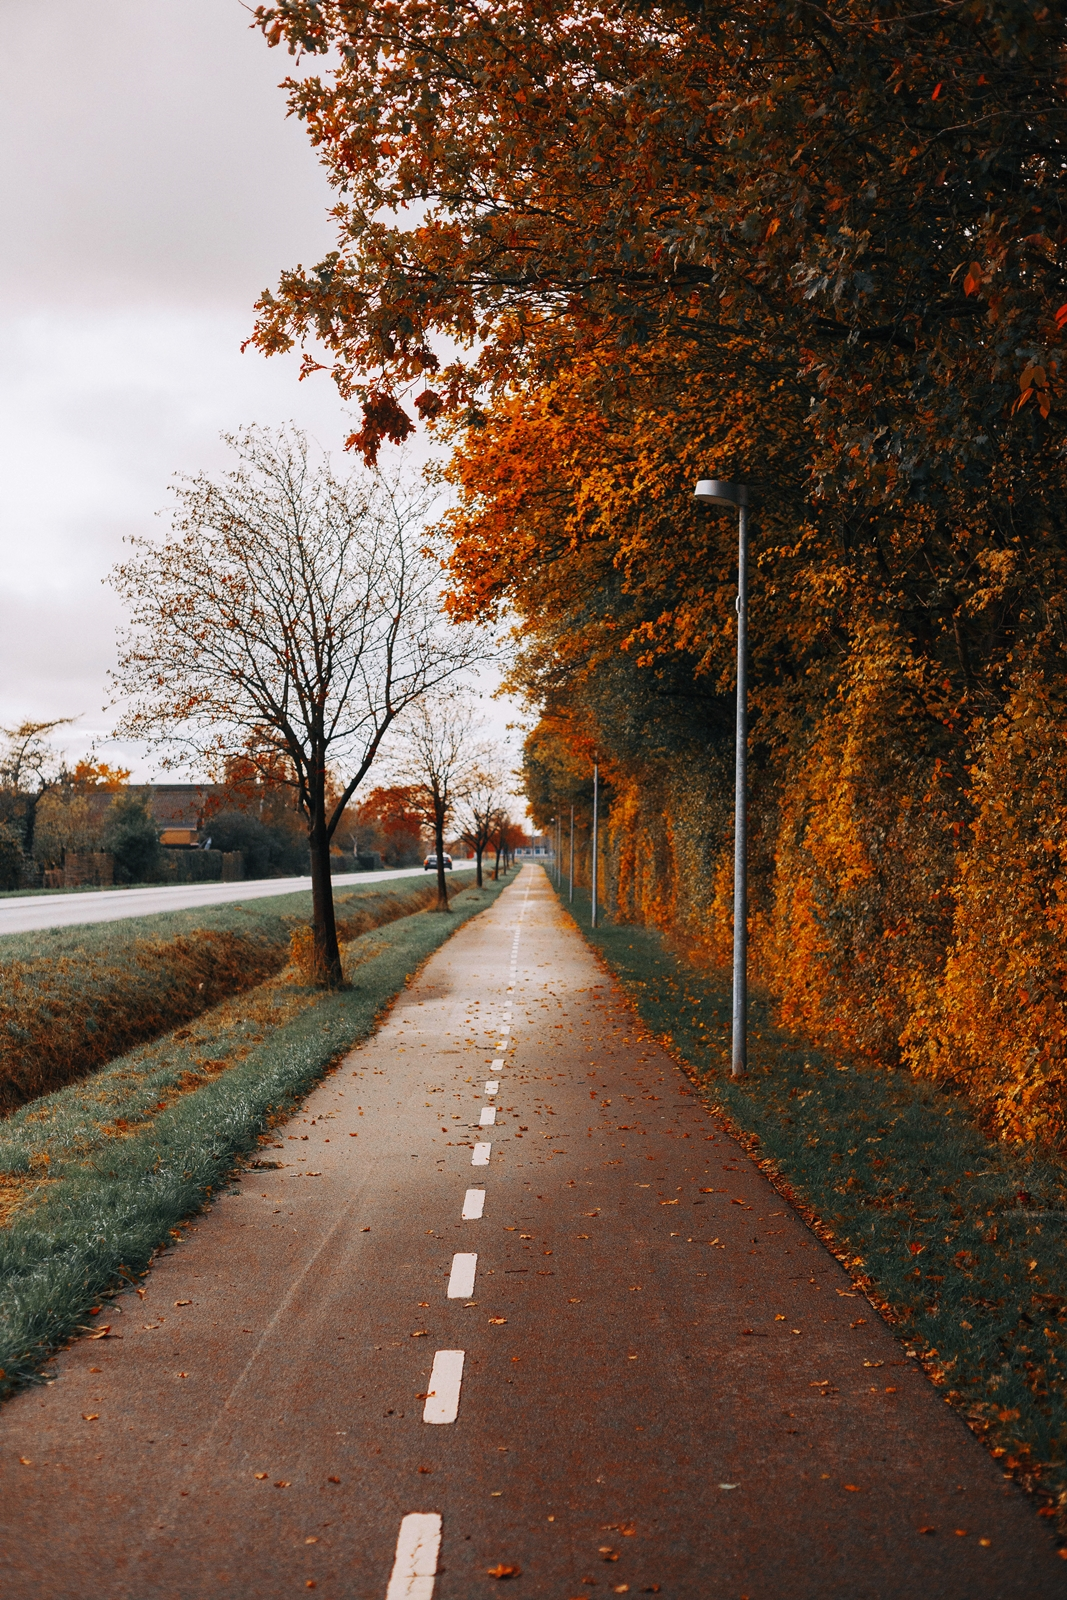 a bike trail with colorful trees and leaves